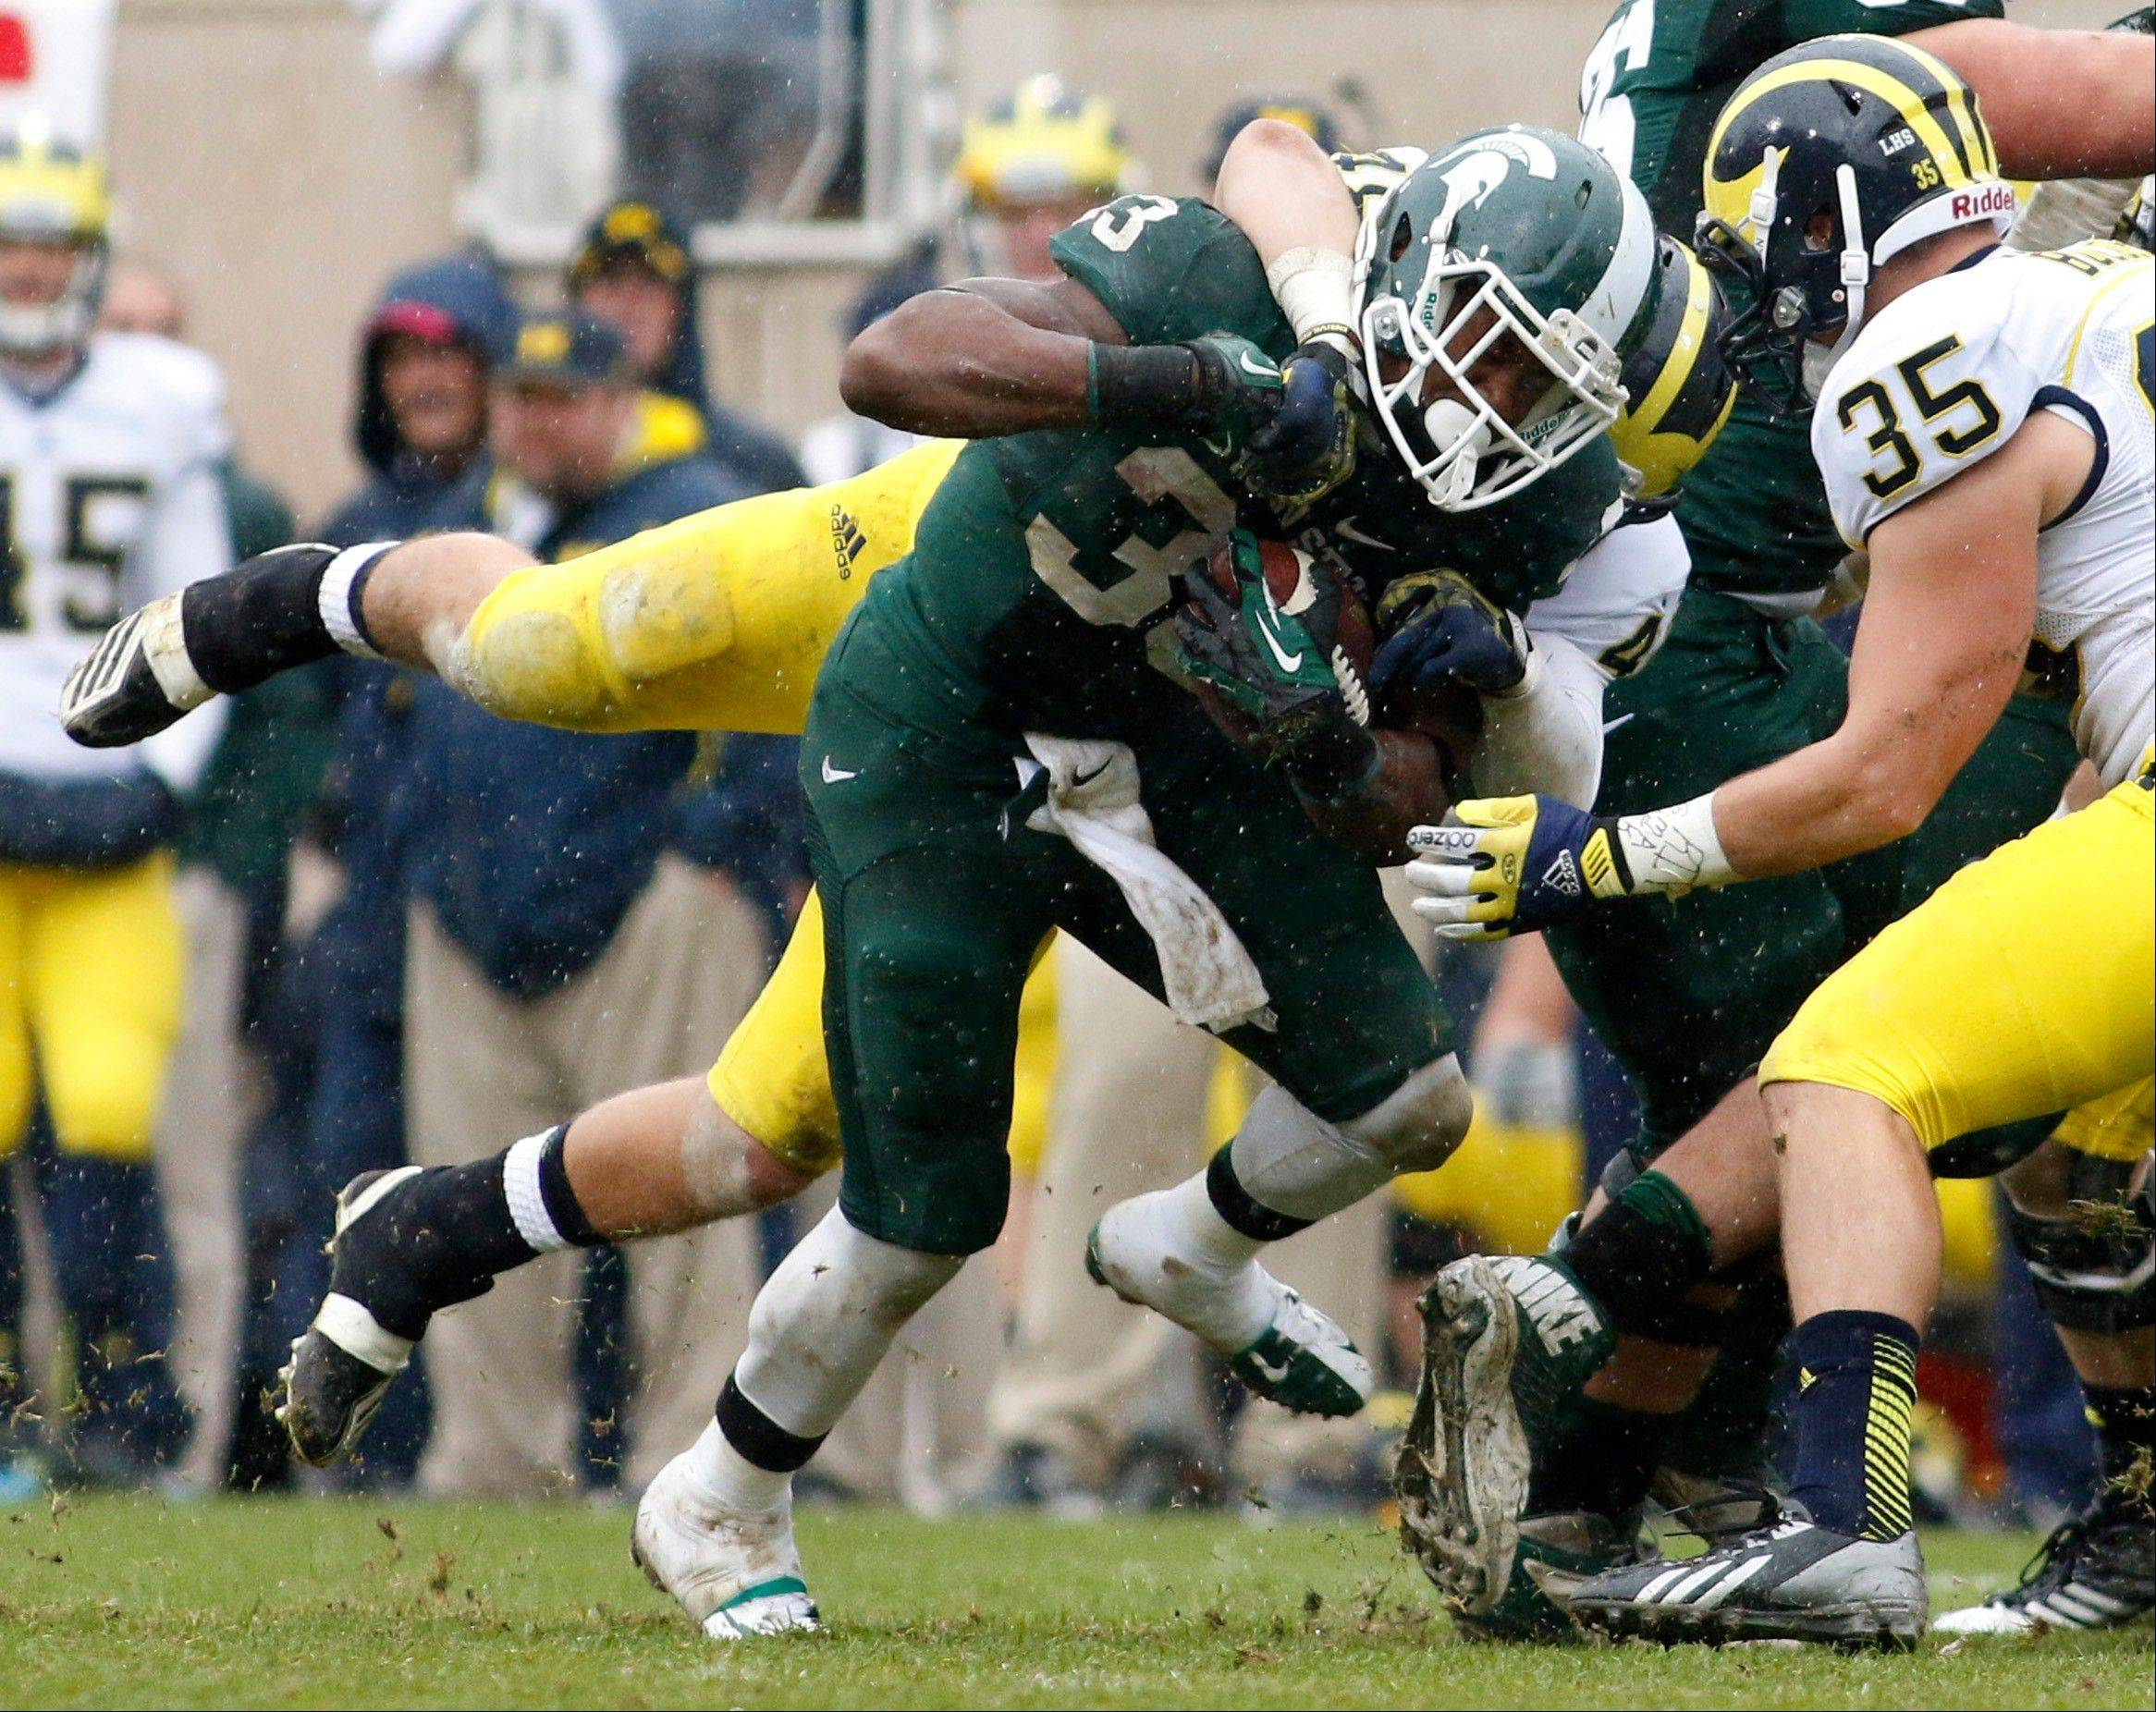 Michigan State's Jeremy Langford (33) is stopped by Michigan's Desmond Morgan, rear, and Joe Bolden (35) during the second quarter in East Lansing, Mich.